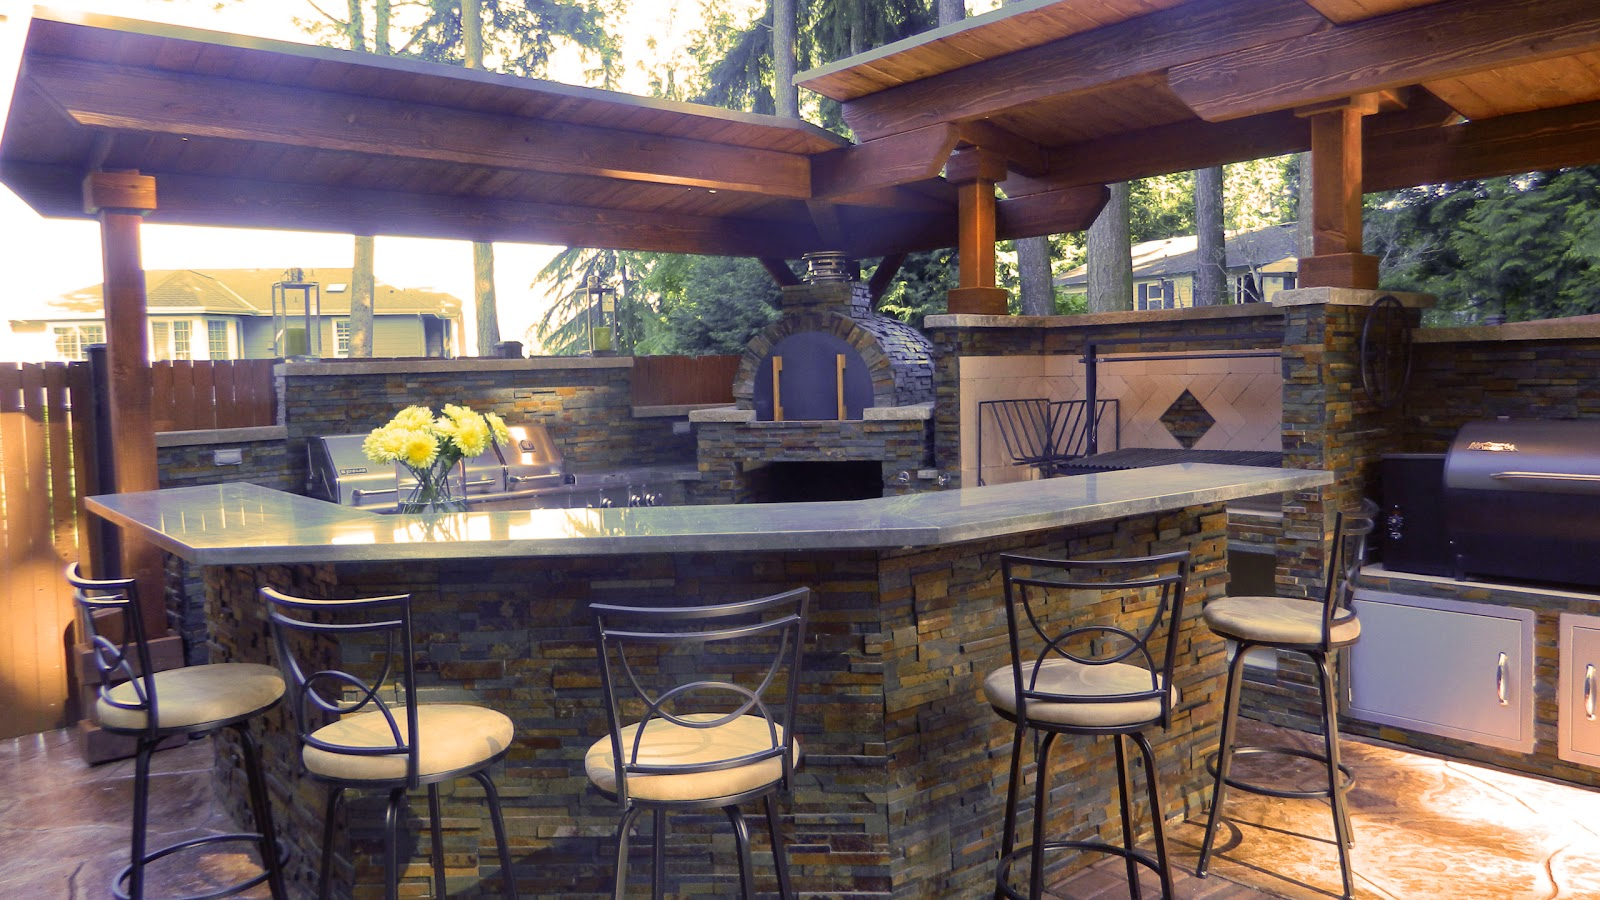 outdoor kitchen with argentinian grill, brickwood pizza oven and